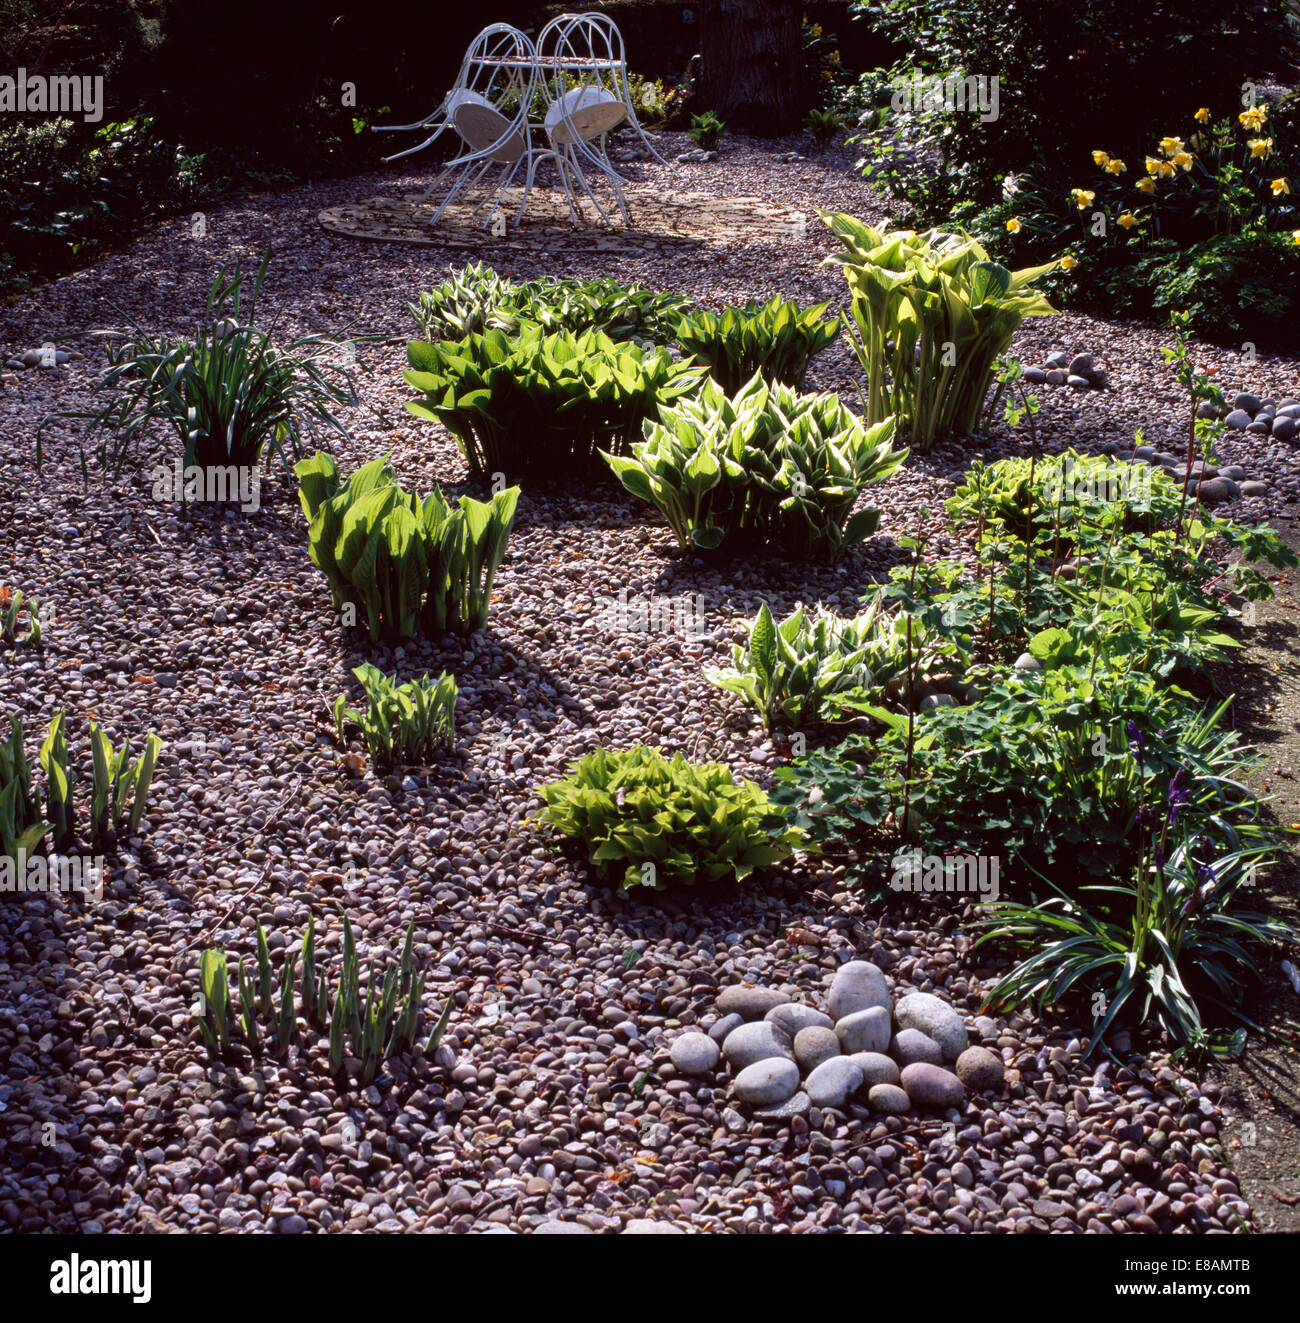 Smooth Round Pebbles On Pebble Patio With Newly Emerging Foliage Of Hostas  In Country Garden